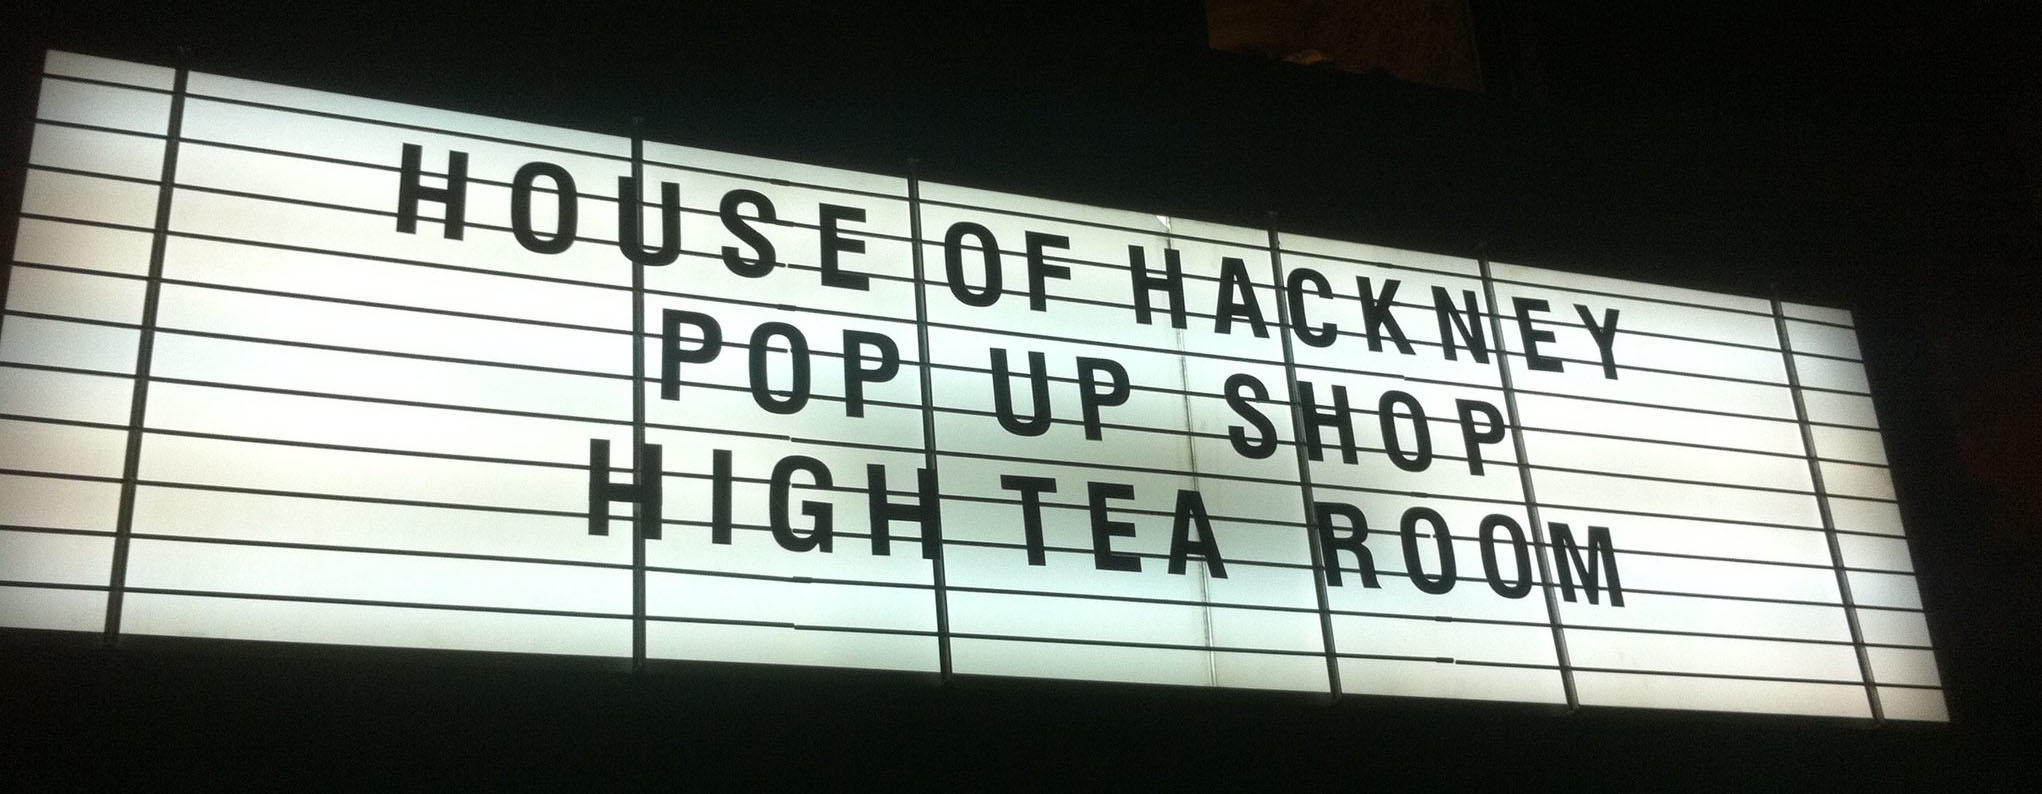 House Of Hackney Pop Up Shop Hosted At Our New Dalston Location